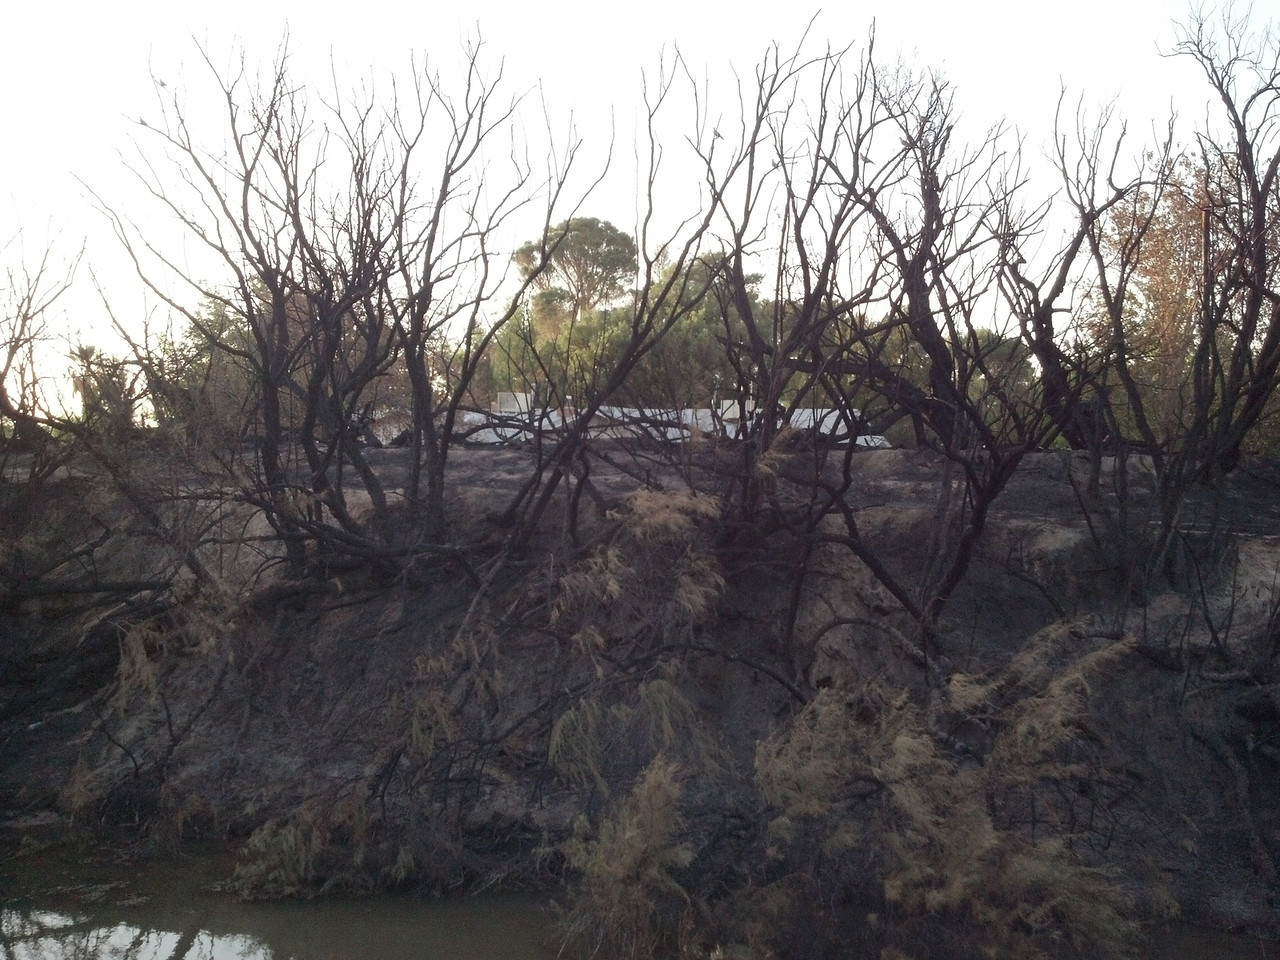 May 24, 2013 Fire Aftermath